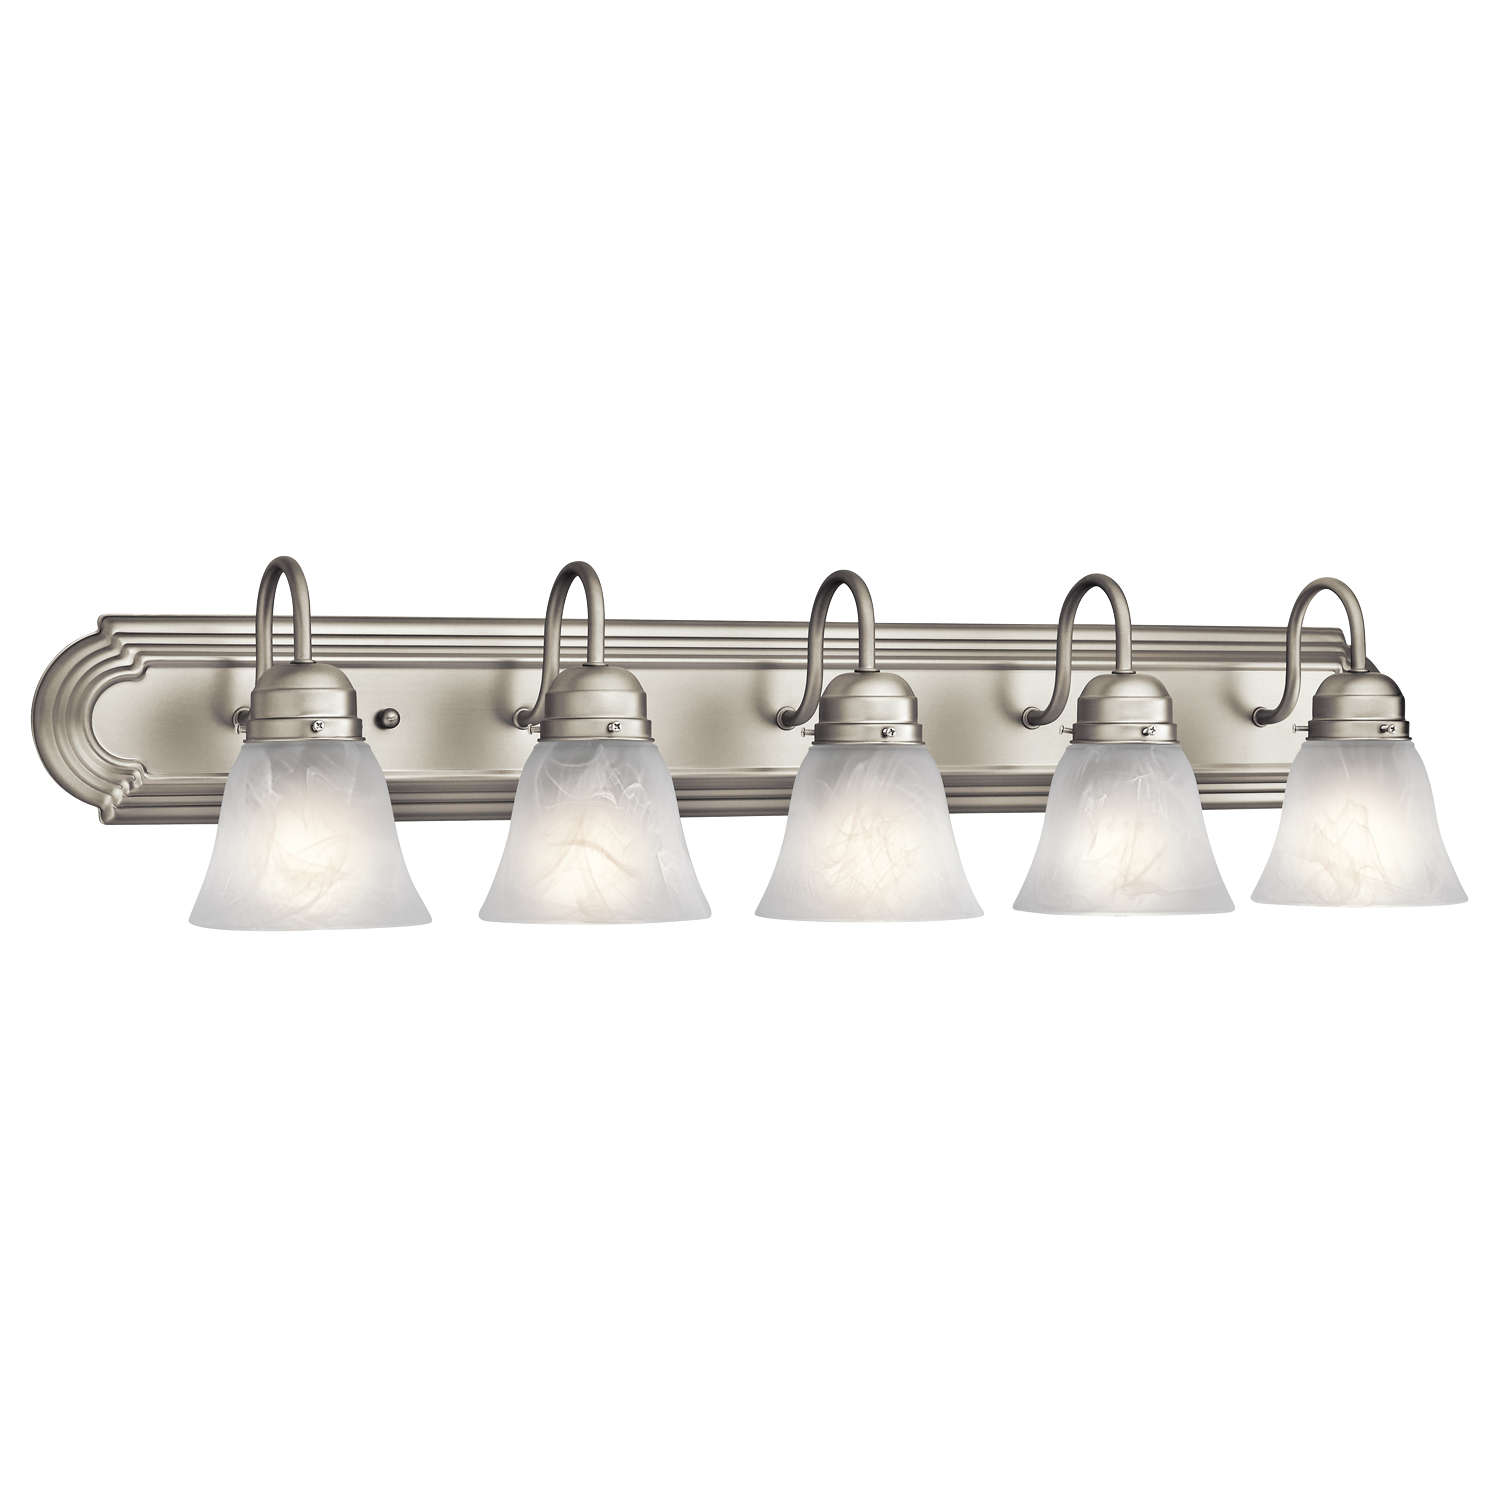 5 Light Bathroom Fixture Latest Bath Bar In Brushed Nickel Finish Decoration